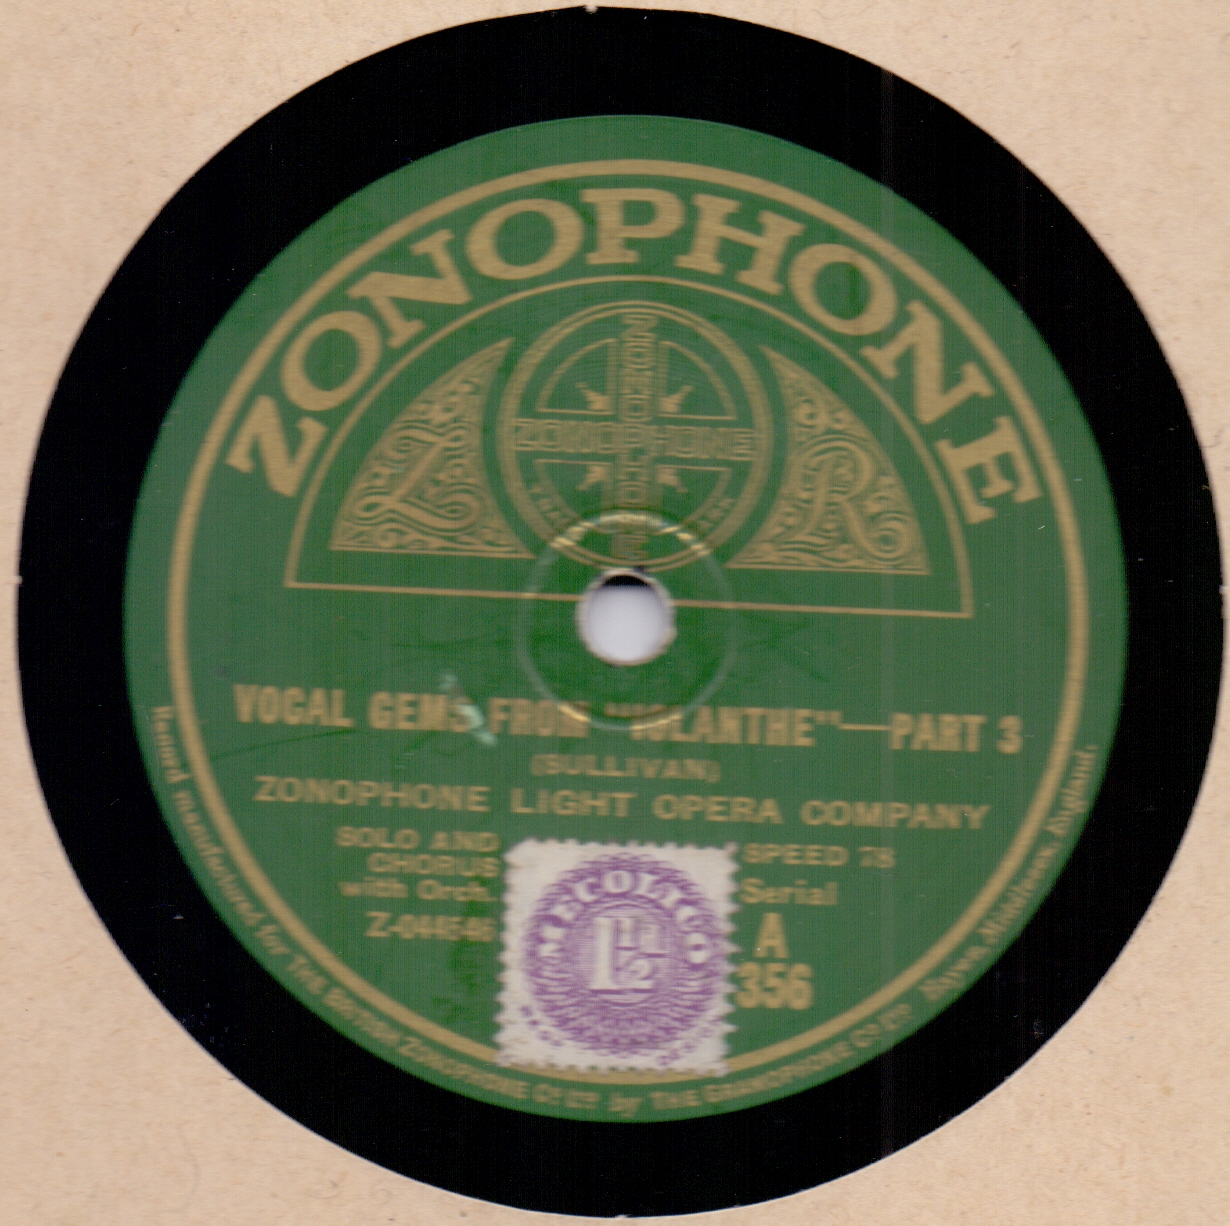 Zonophone Light Opera Company Vocal Gems From ''Iolanthe''